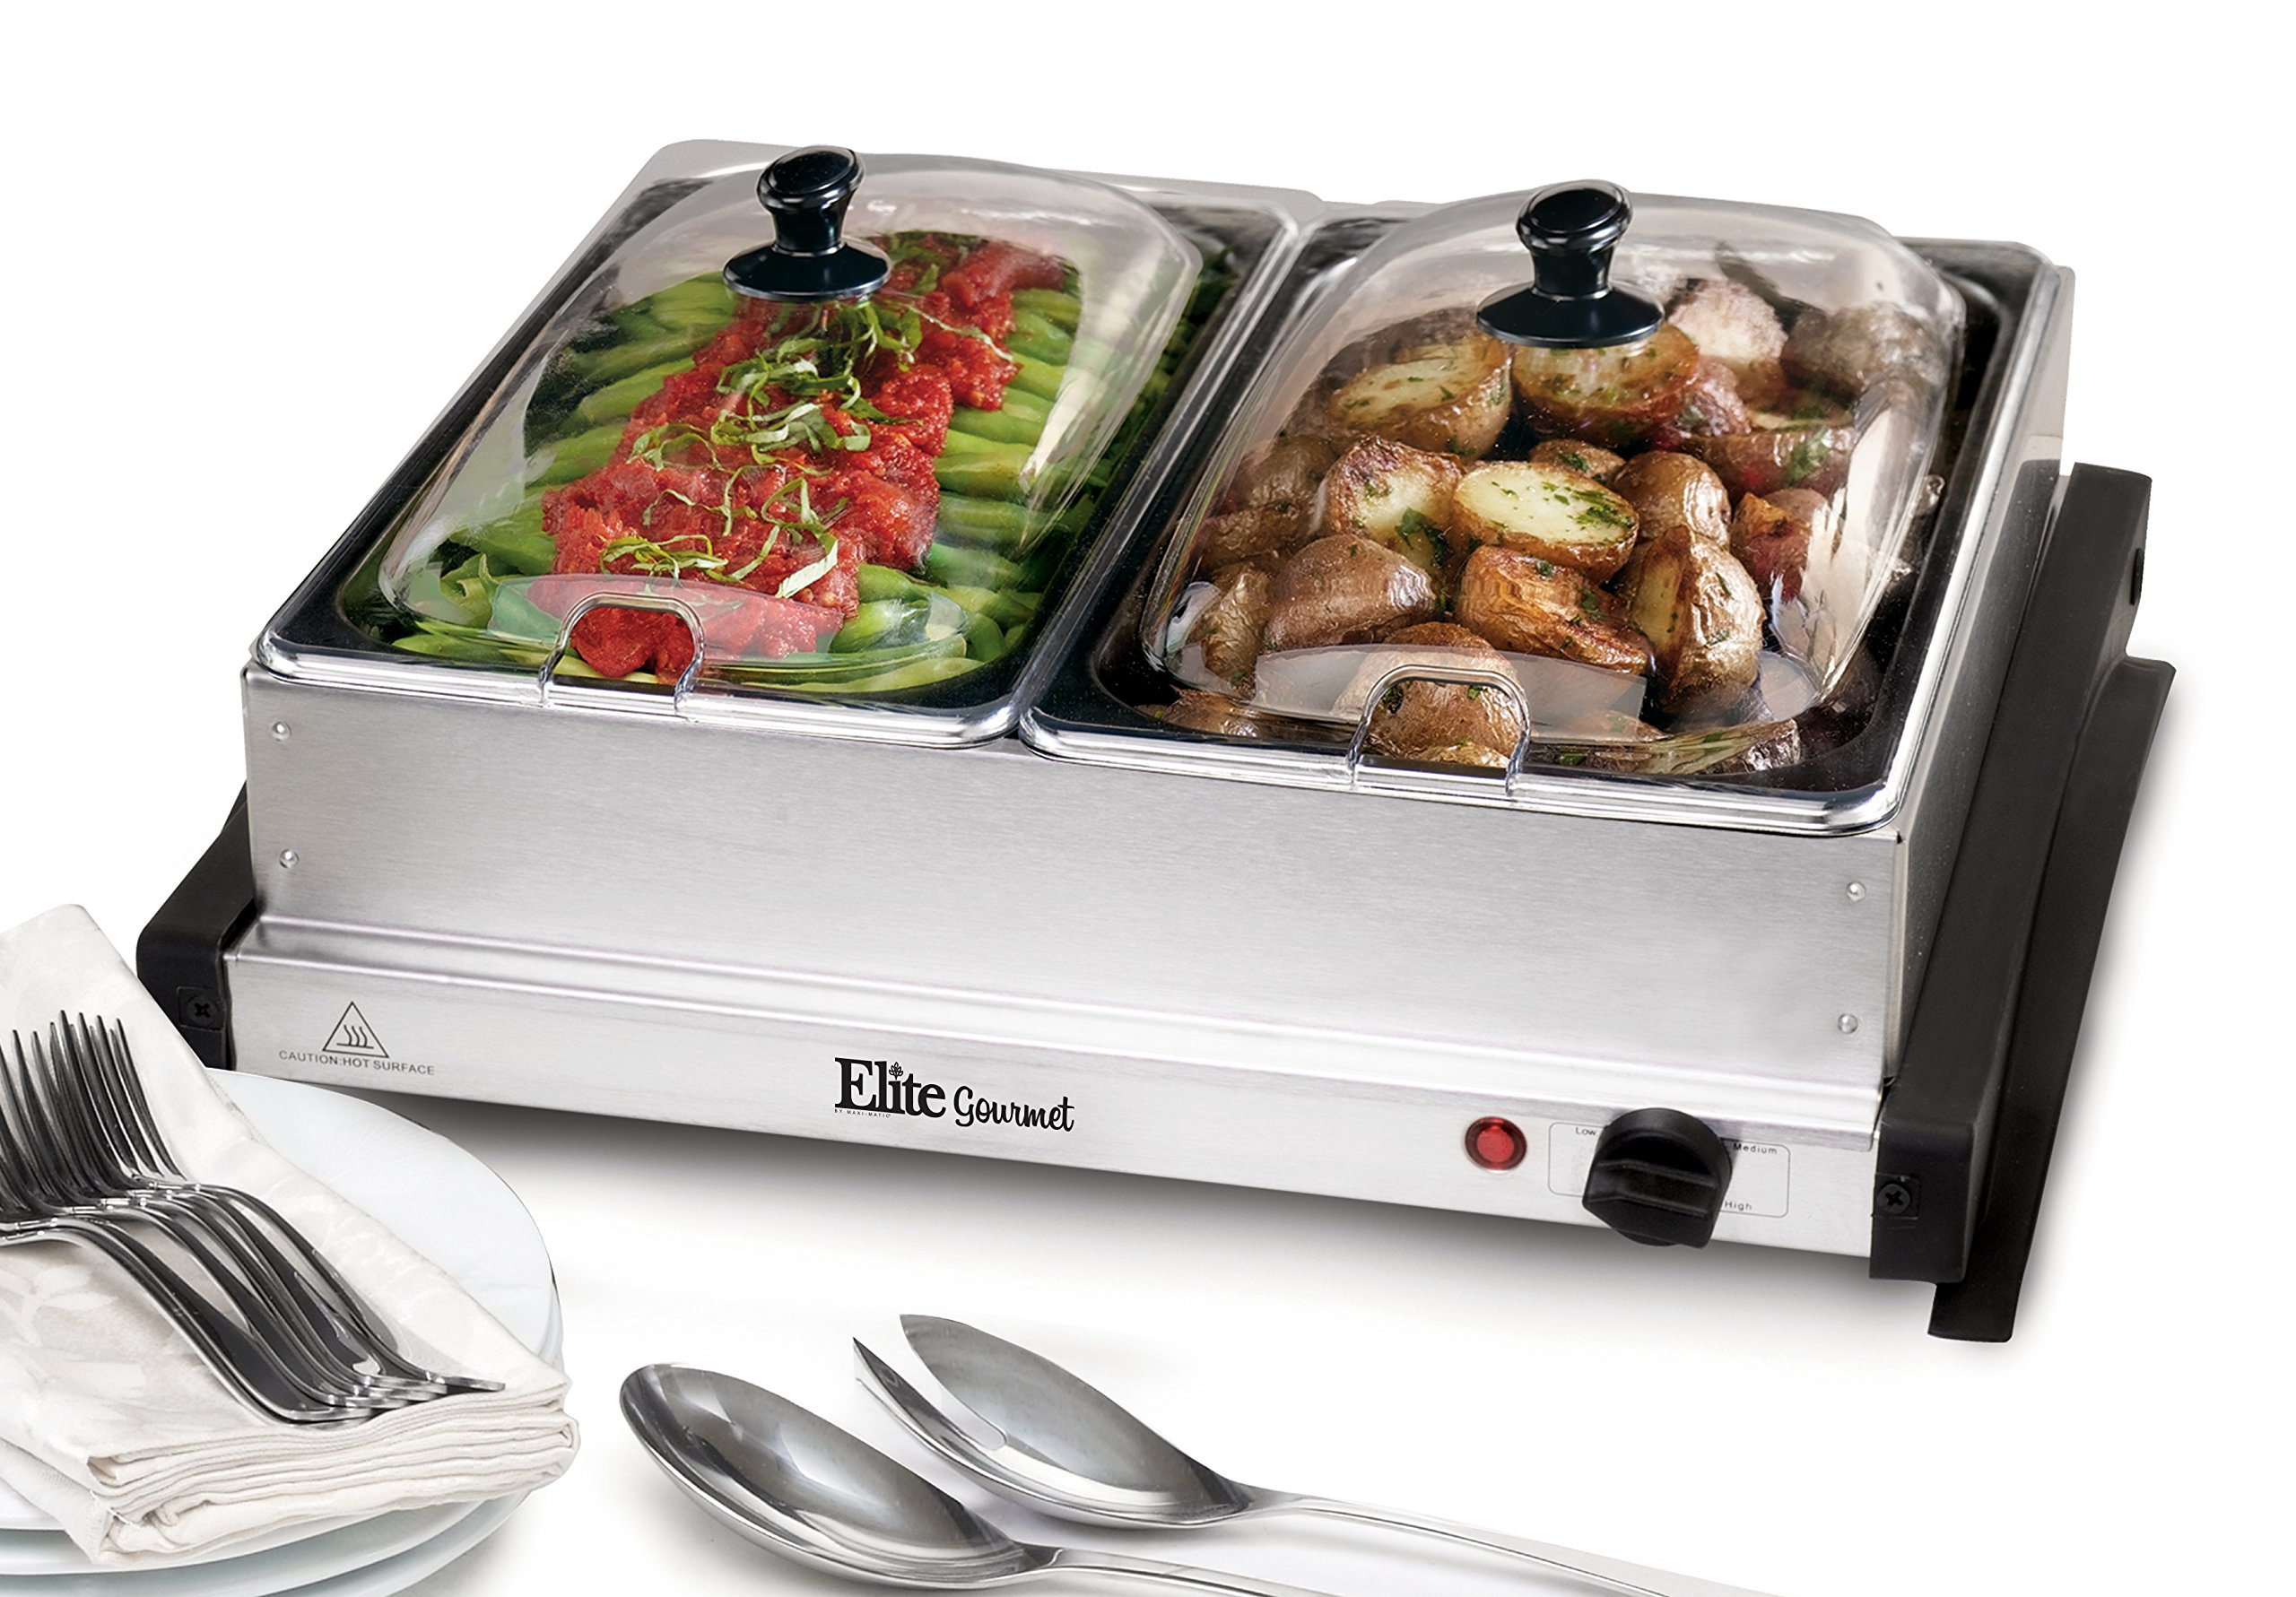 Elite Gourmet EWM-6122 Dual Server Food Warmer, Adjustable Temp For For Parties & Holidays, 2 x 2.5Qt Buffet Trays with Slotted Lids, Perfect for Parties, Entertaining & Holidays, Stainless Steel by Maxi-Matic